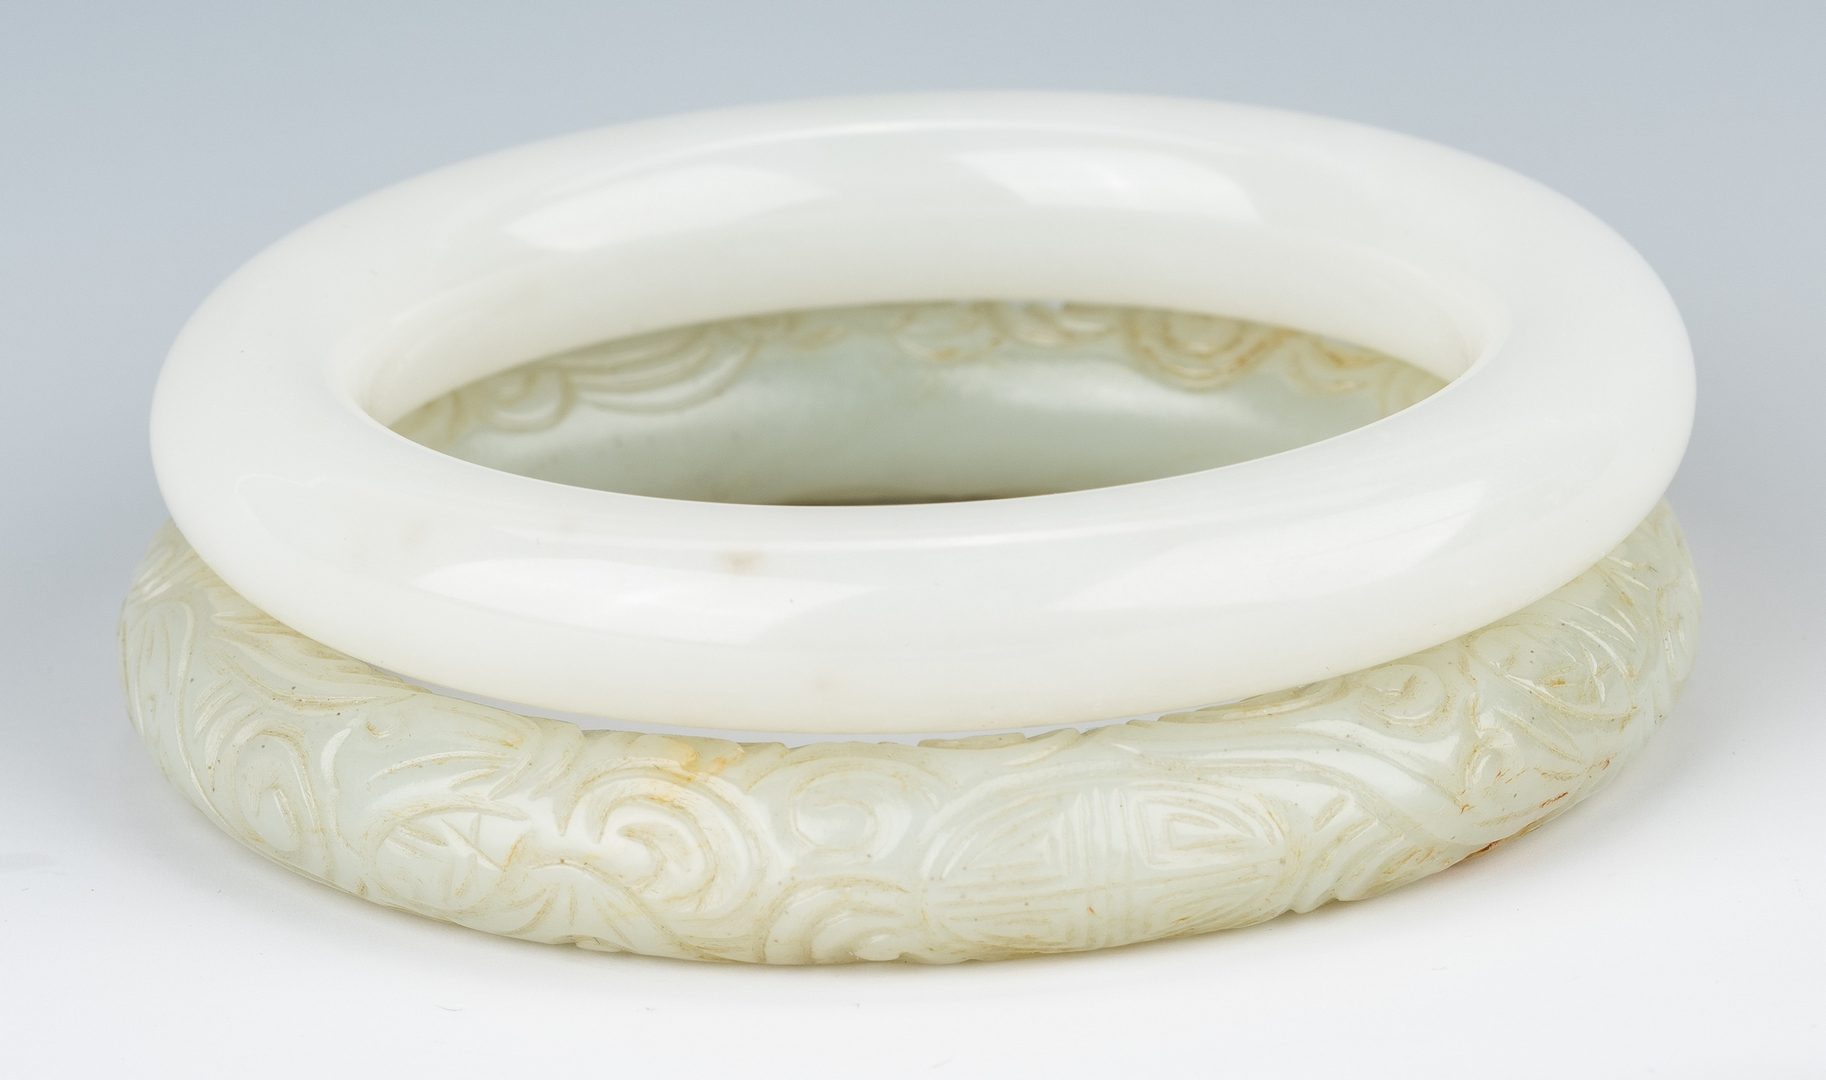 Lot 468: 2 Chinese Jade Bangles & 4 Jade Archer's Rings, 6 items